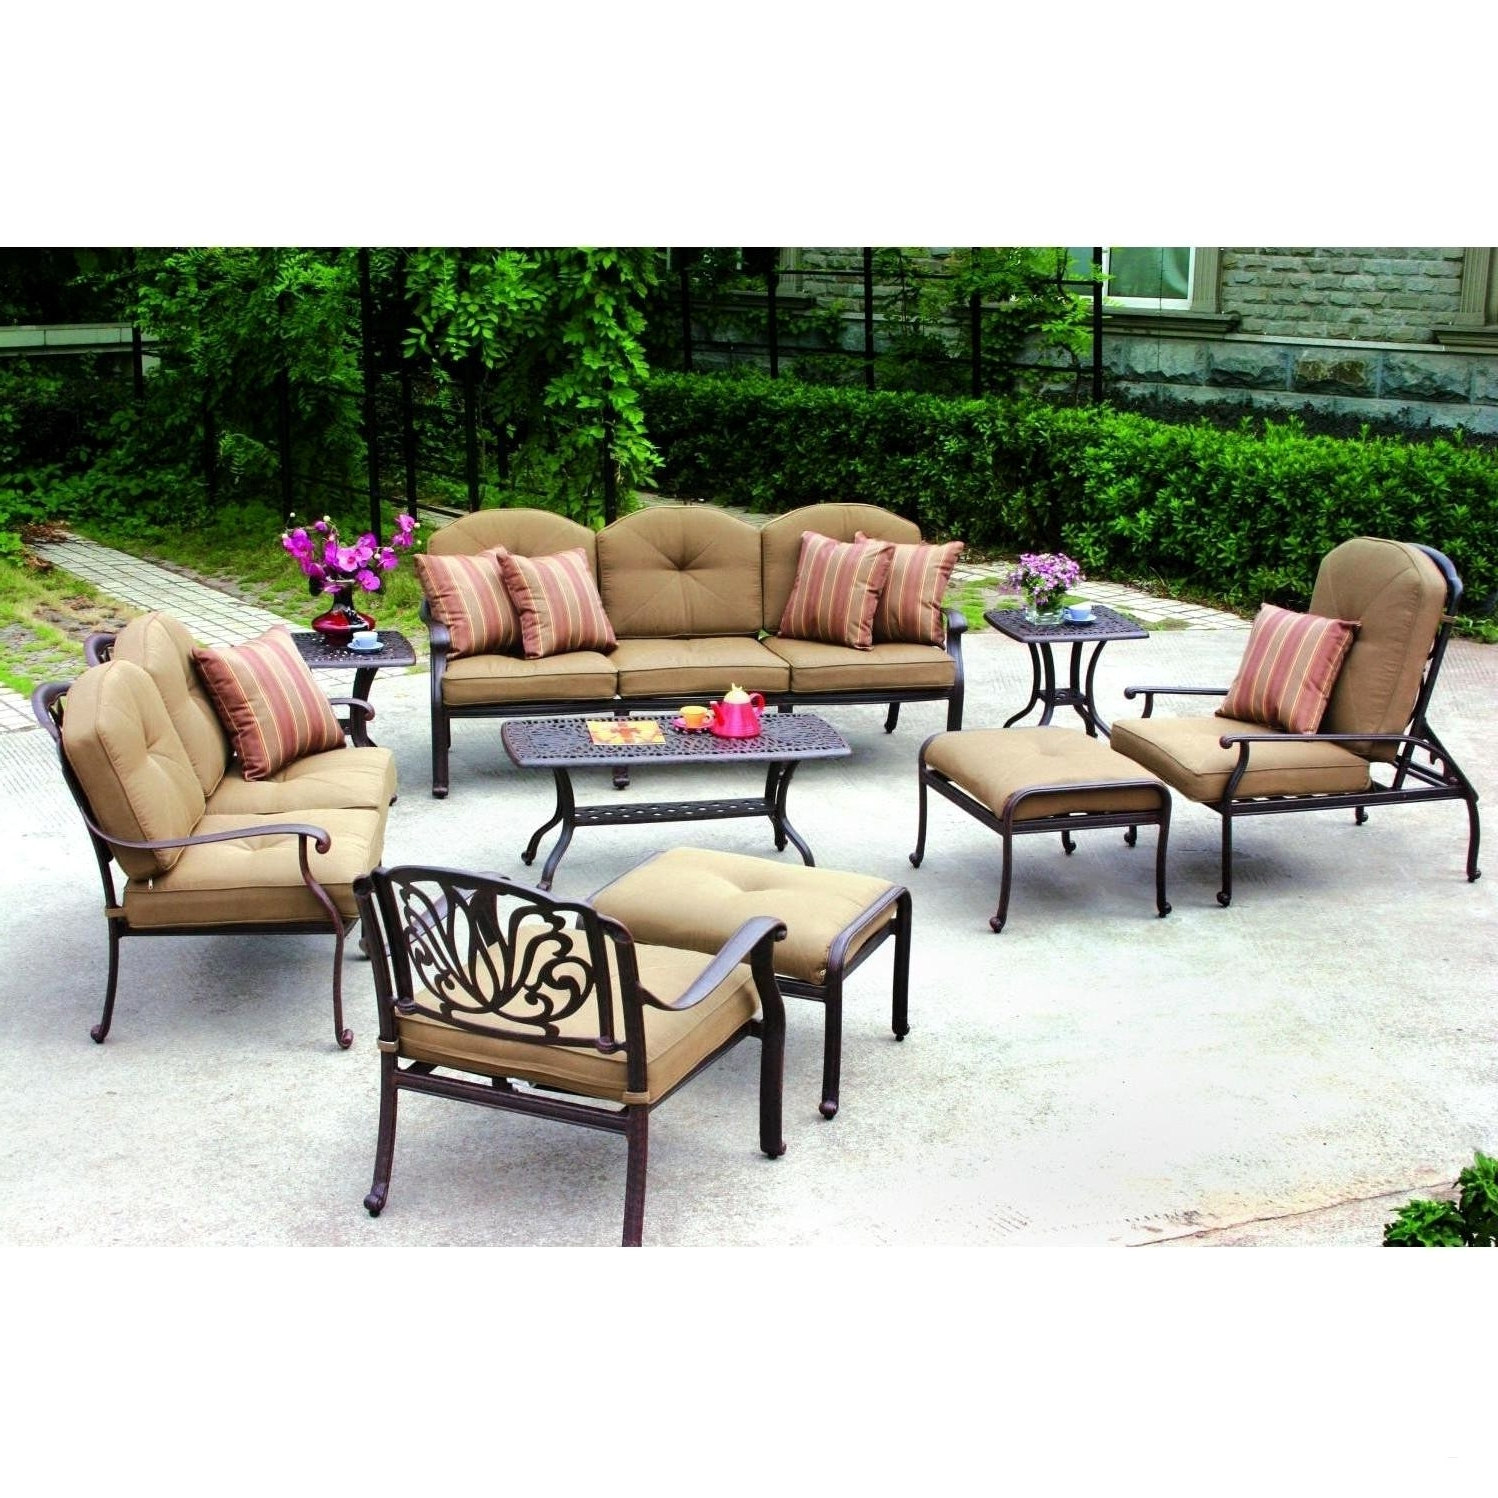 Preferred Target Patio Furniture Conversation Sets In Outdoor Fire Pit Seating Conversation Chairs 3 Piece Patio Set (View 7 of 15)